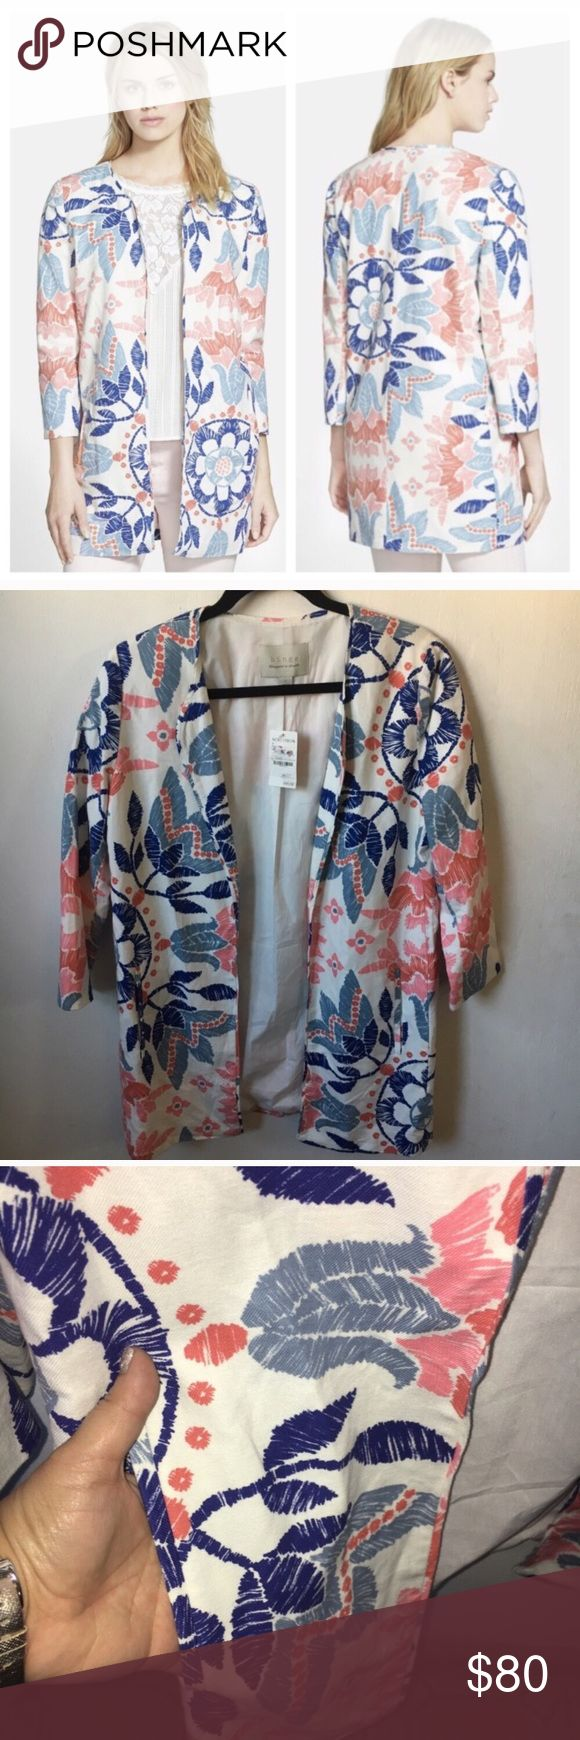 """Hinge Nordstrom Floral Jacket Blazer Size Small Hinge Nordstrom Floral Jacket Blazer Size Small, new with tags. Retail $128 🌸 An open topper spun from a sumptuous blend of cotton and linen finds spring-ready style with a refreshing floral print. - 32"""" length (size Medium) - 70% cotton, 30% linen - Machine wash cold, line dry 🌸 Purchased at Nordstrom🔹 Nordstrom Jackets & Coats"""